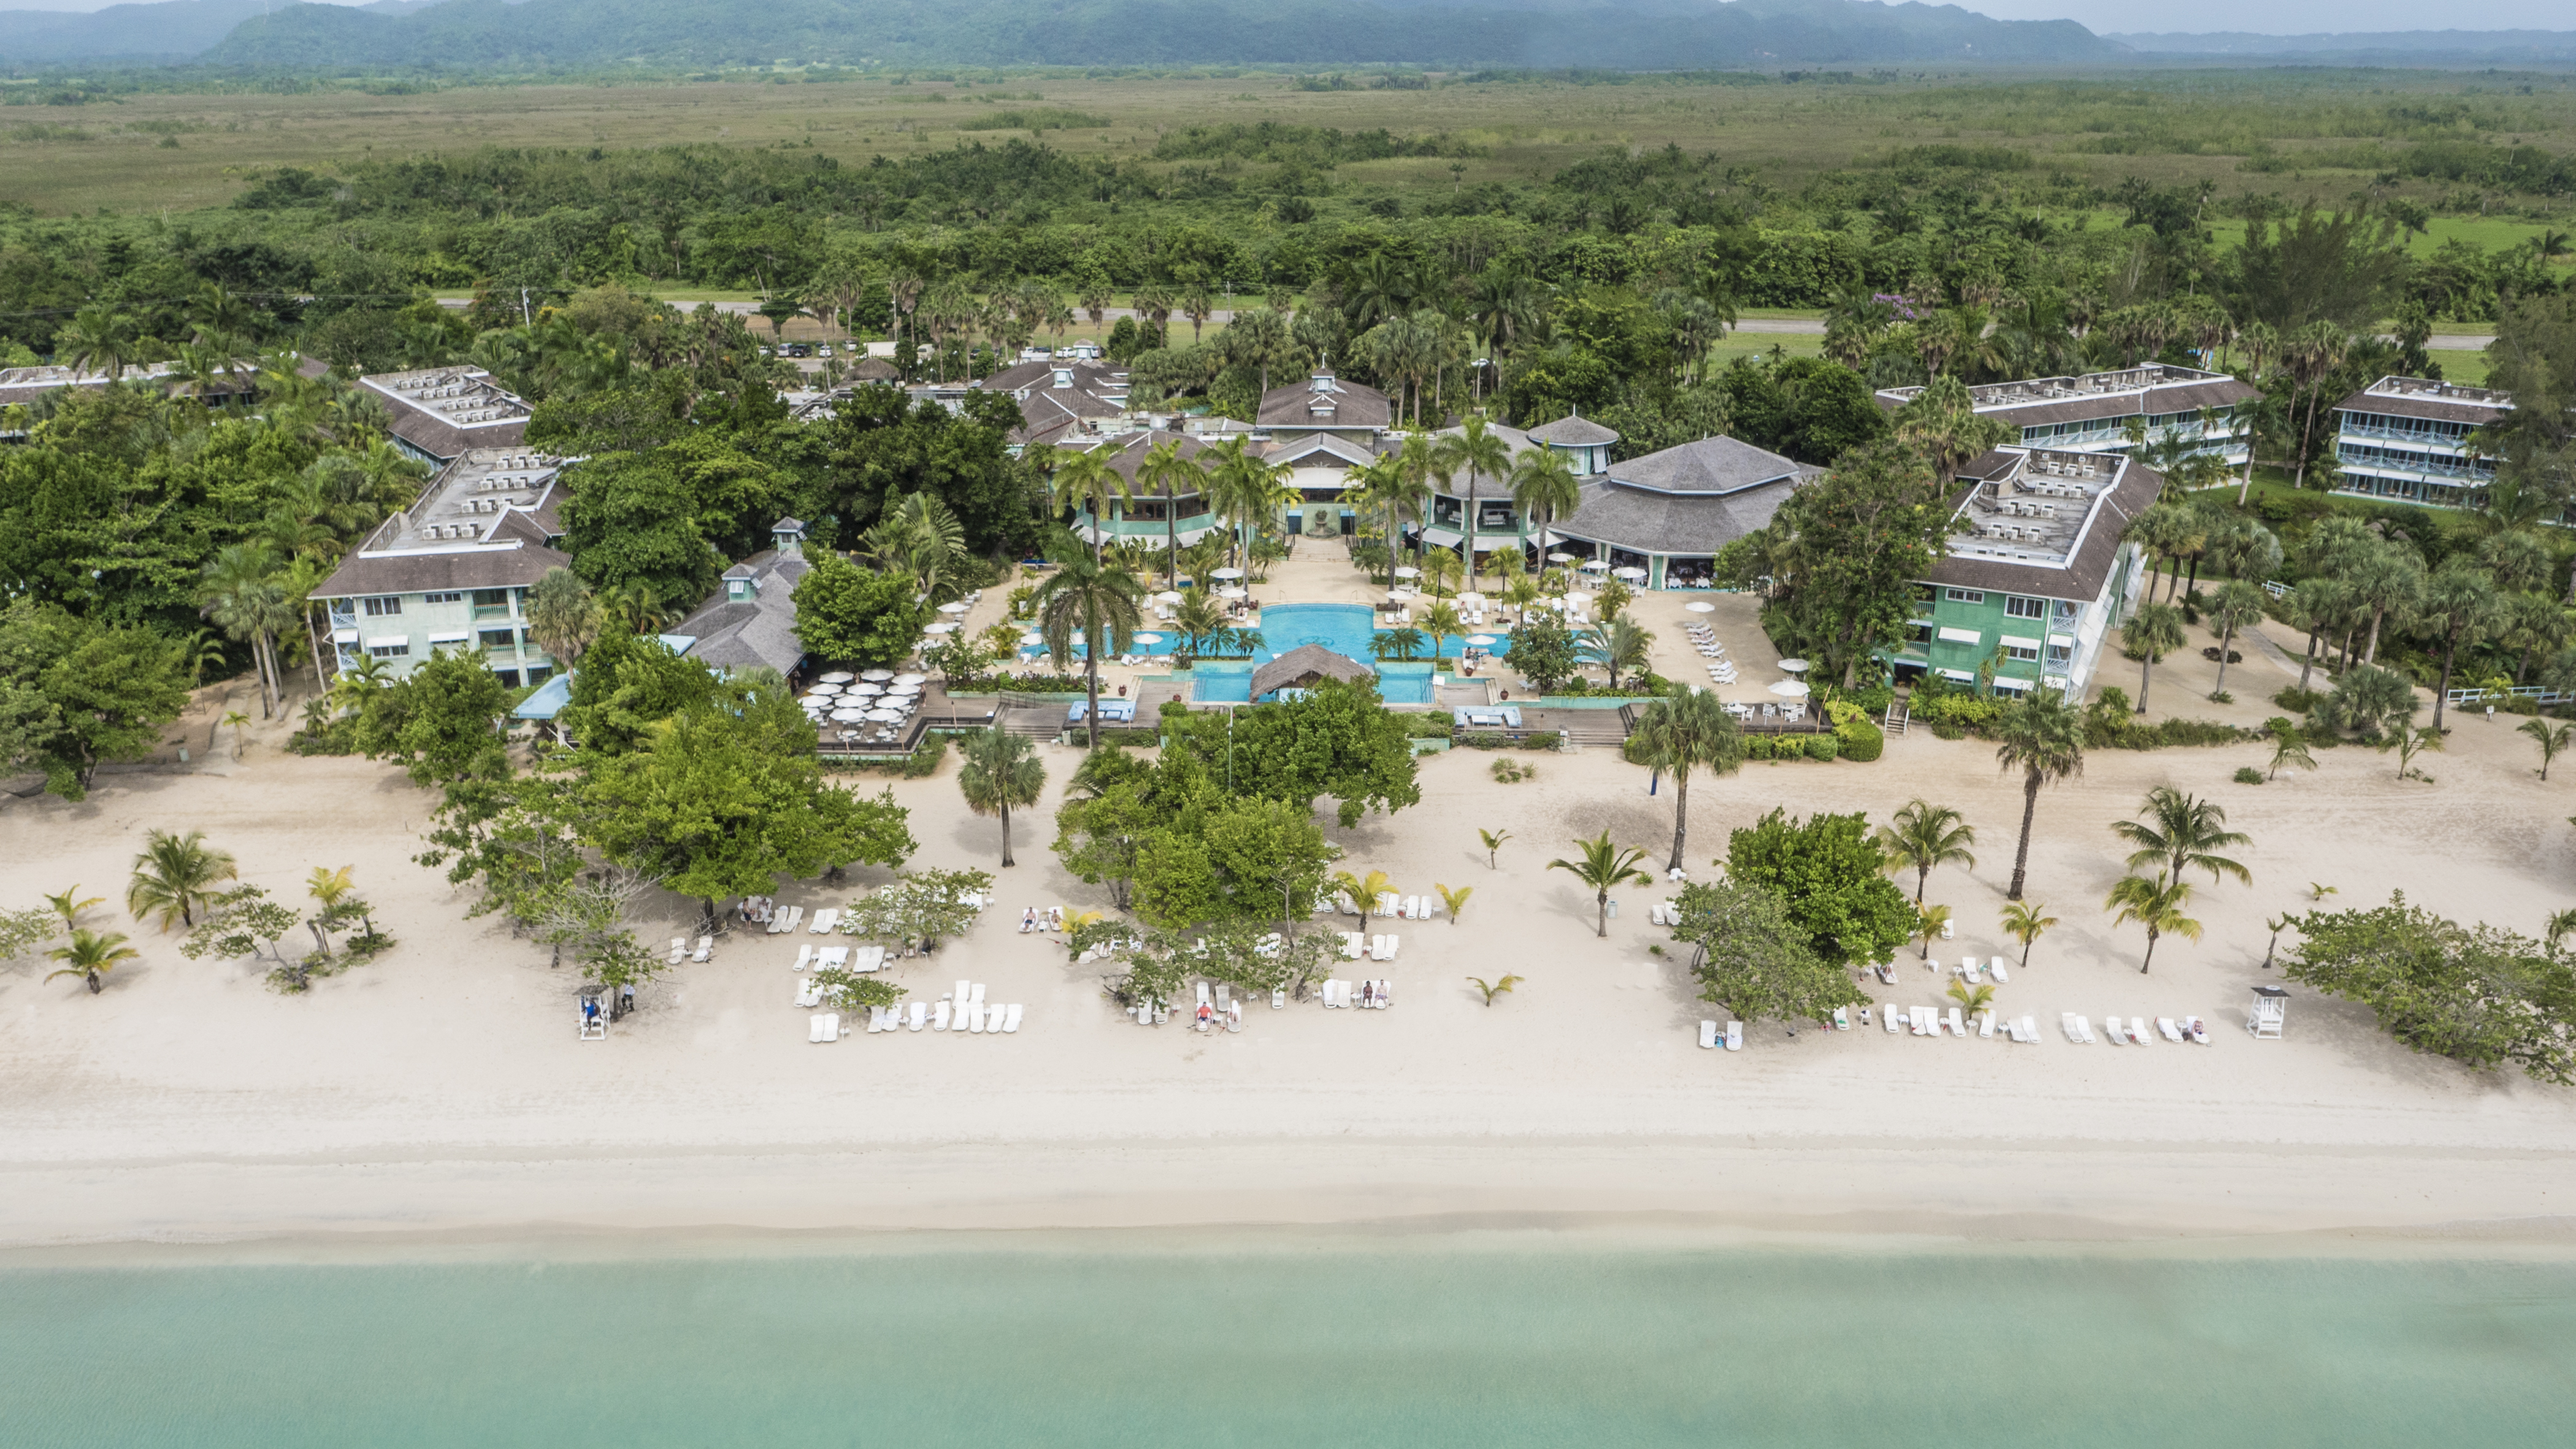 Travel Agency All-Inclusive Resort Couples Negril 07